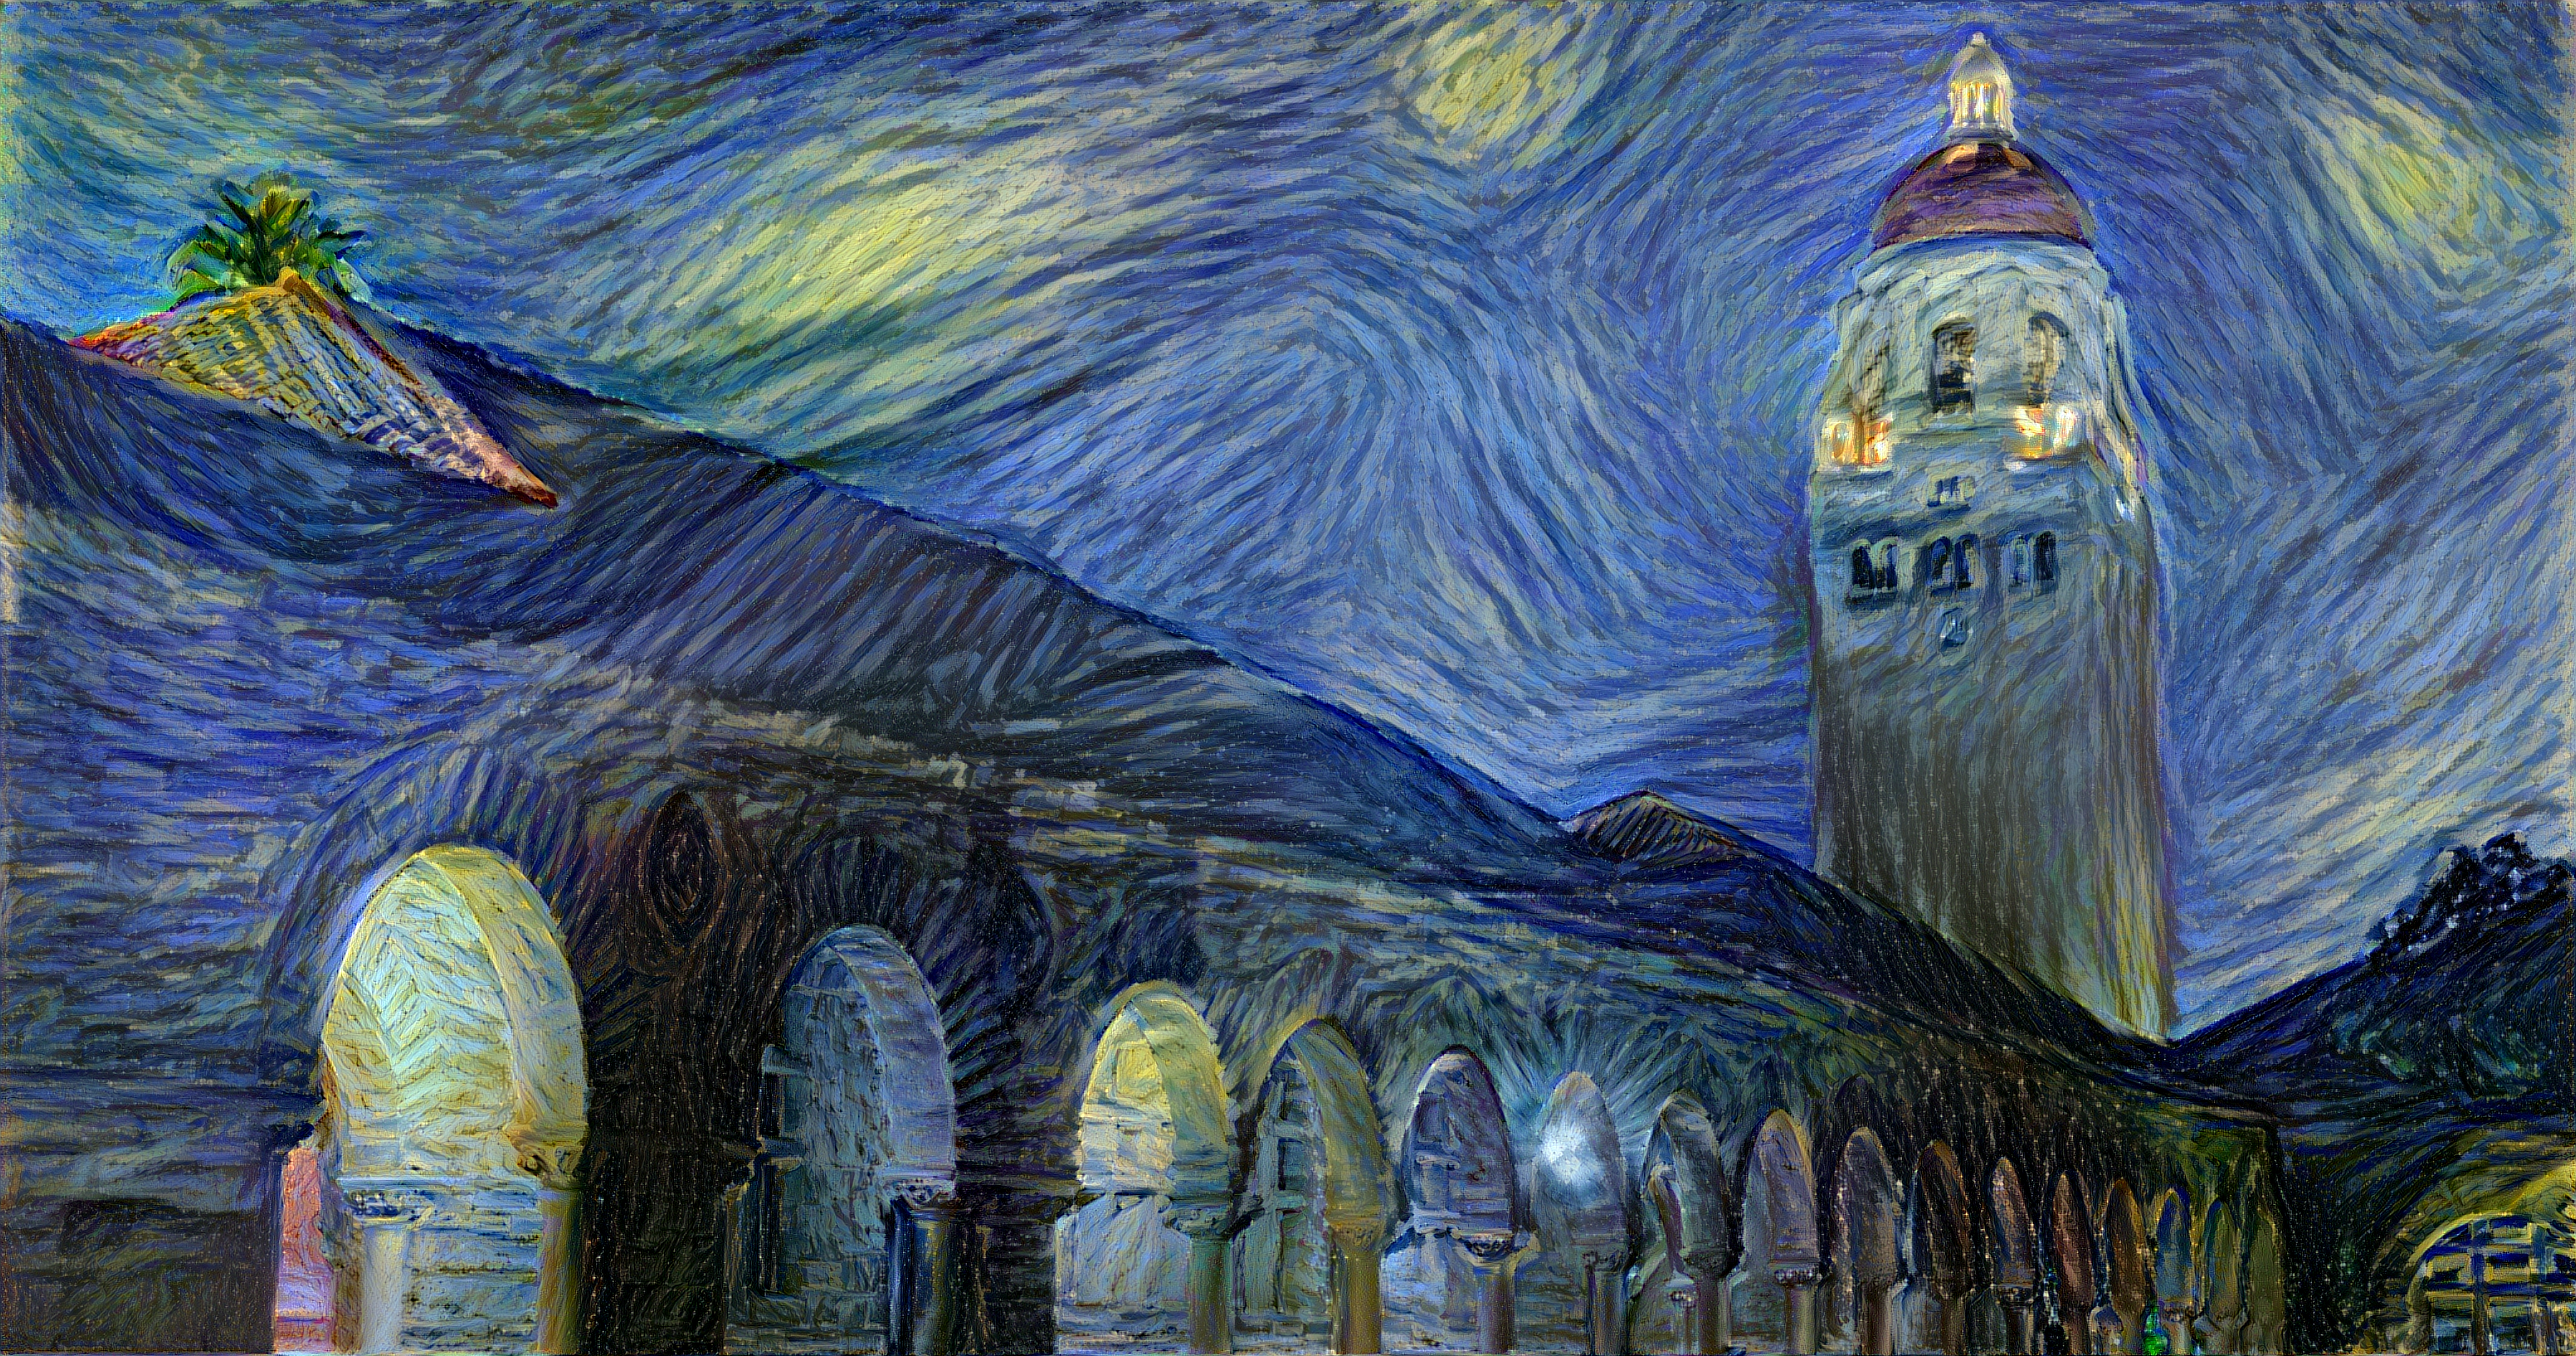 A synthetic image generated by Justin Johnson that depicts Stanford University's Hoover Tower using the style of Vincent van Gogh's 'The Starry Night'